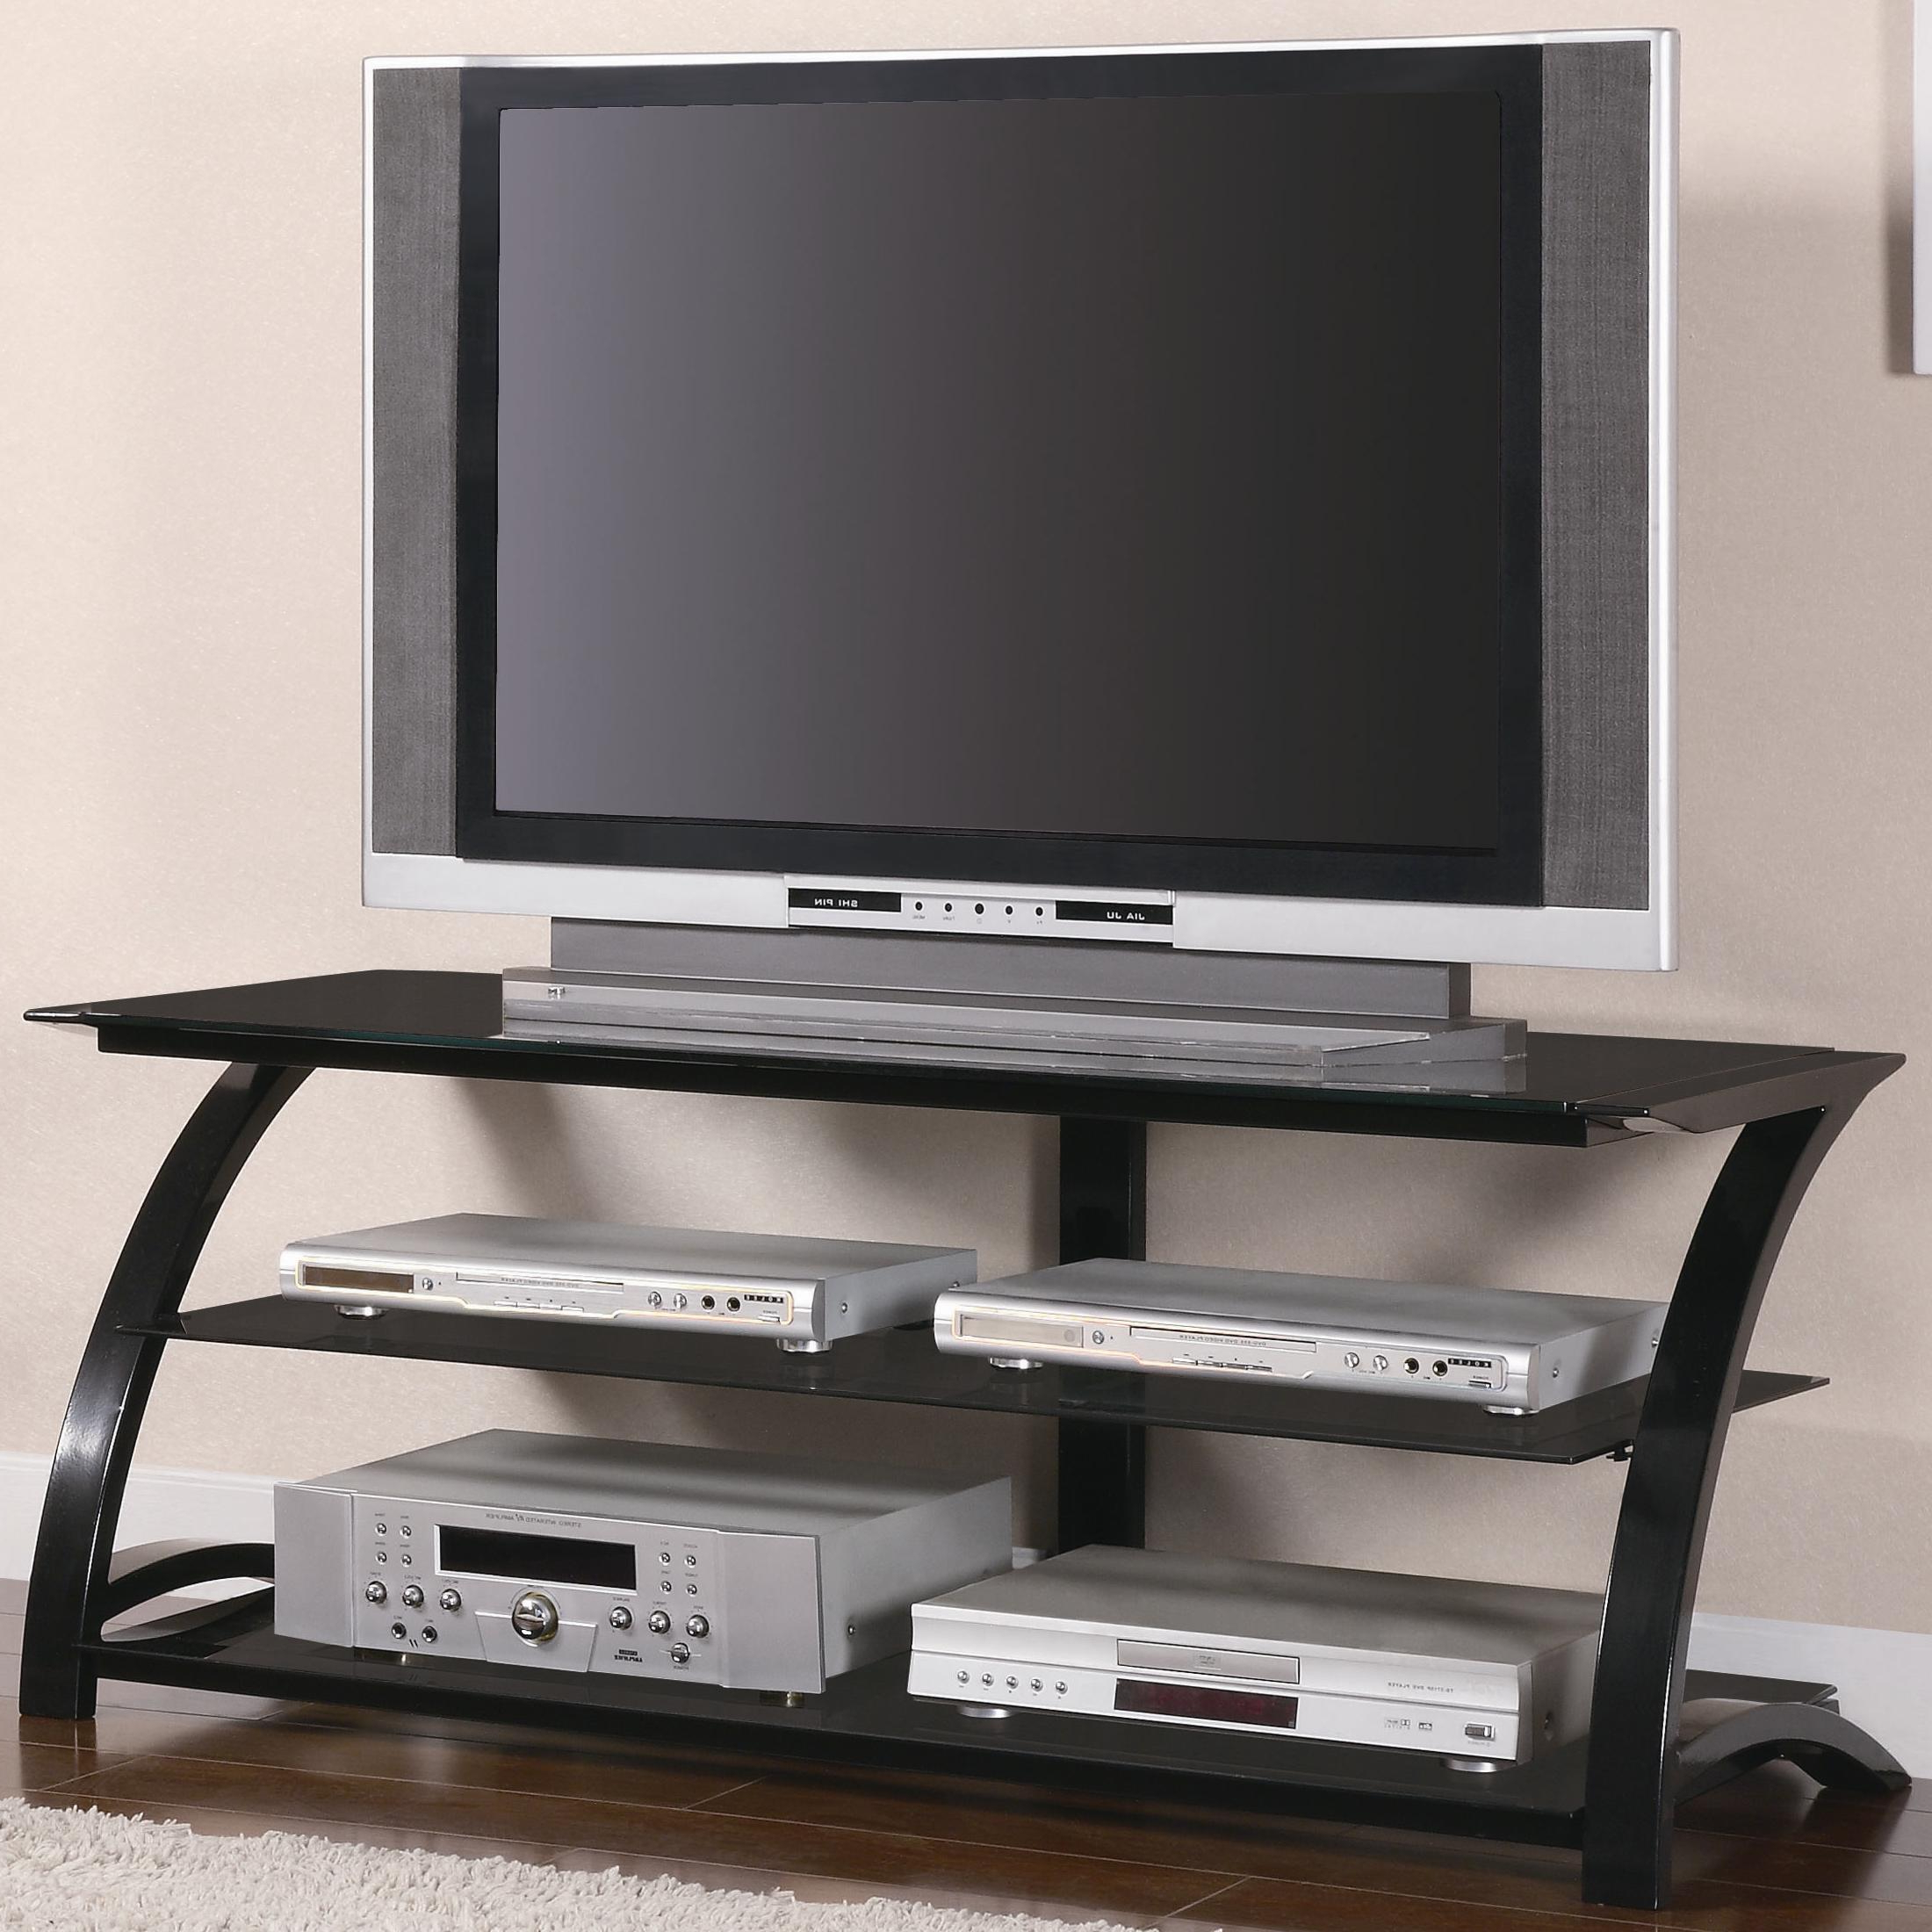 Value Within Most Popular Contemporary Glass Tv Stands (View 2 of 20)